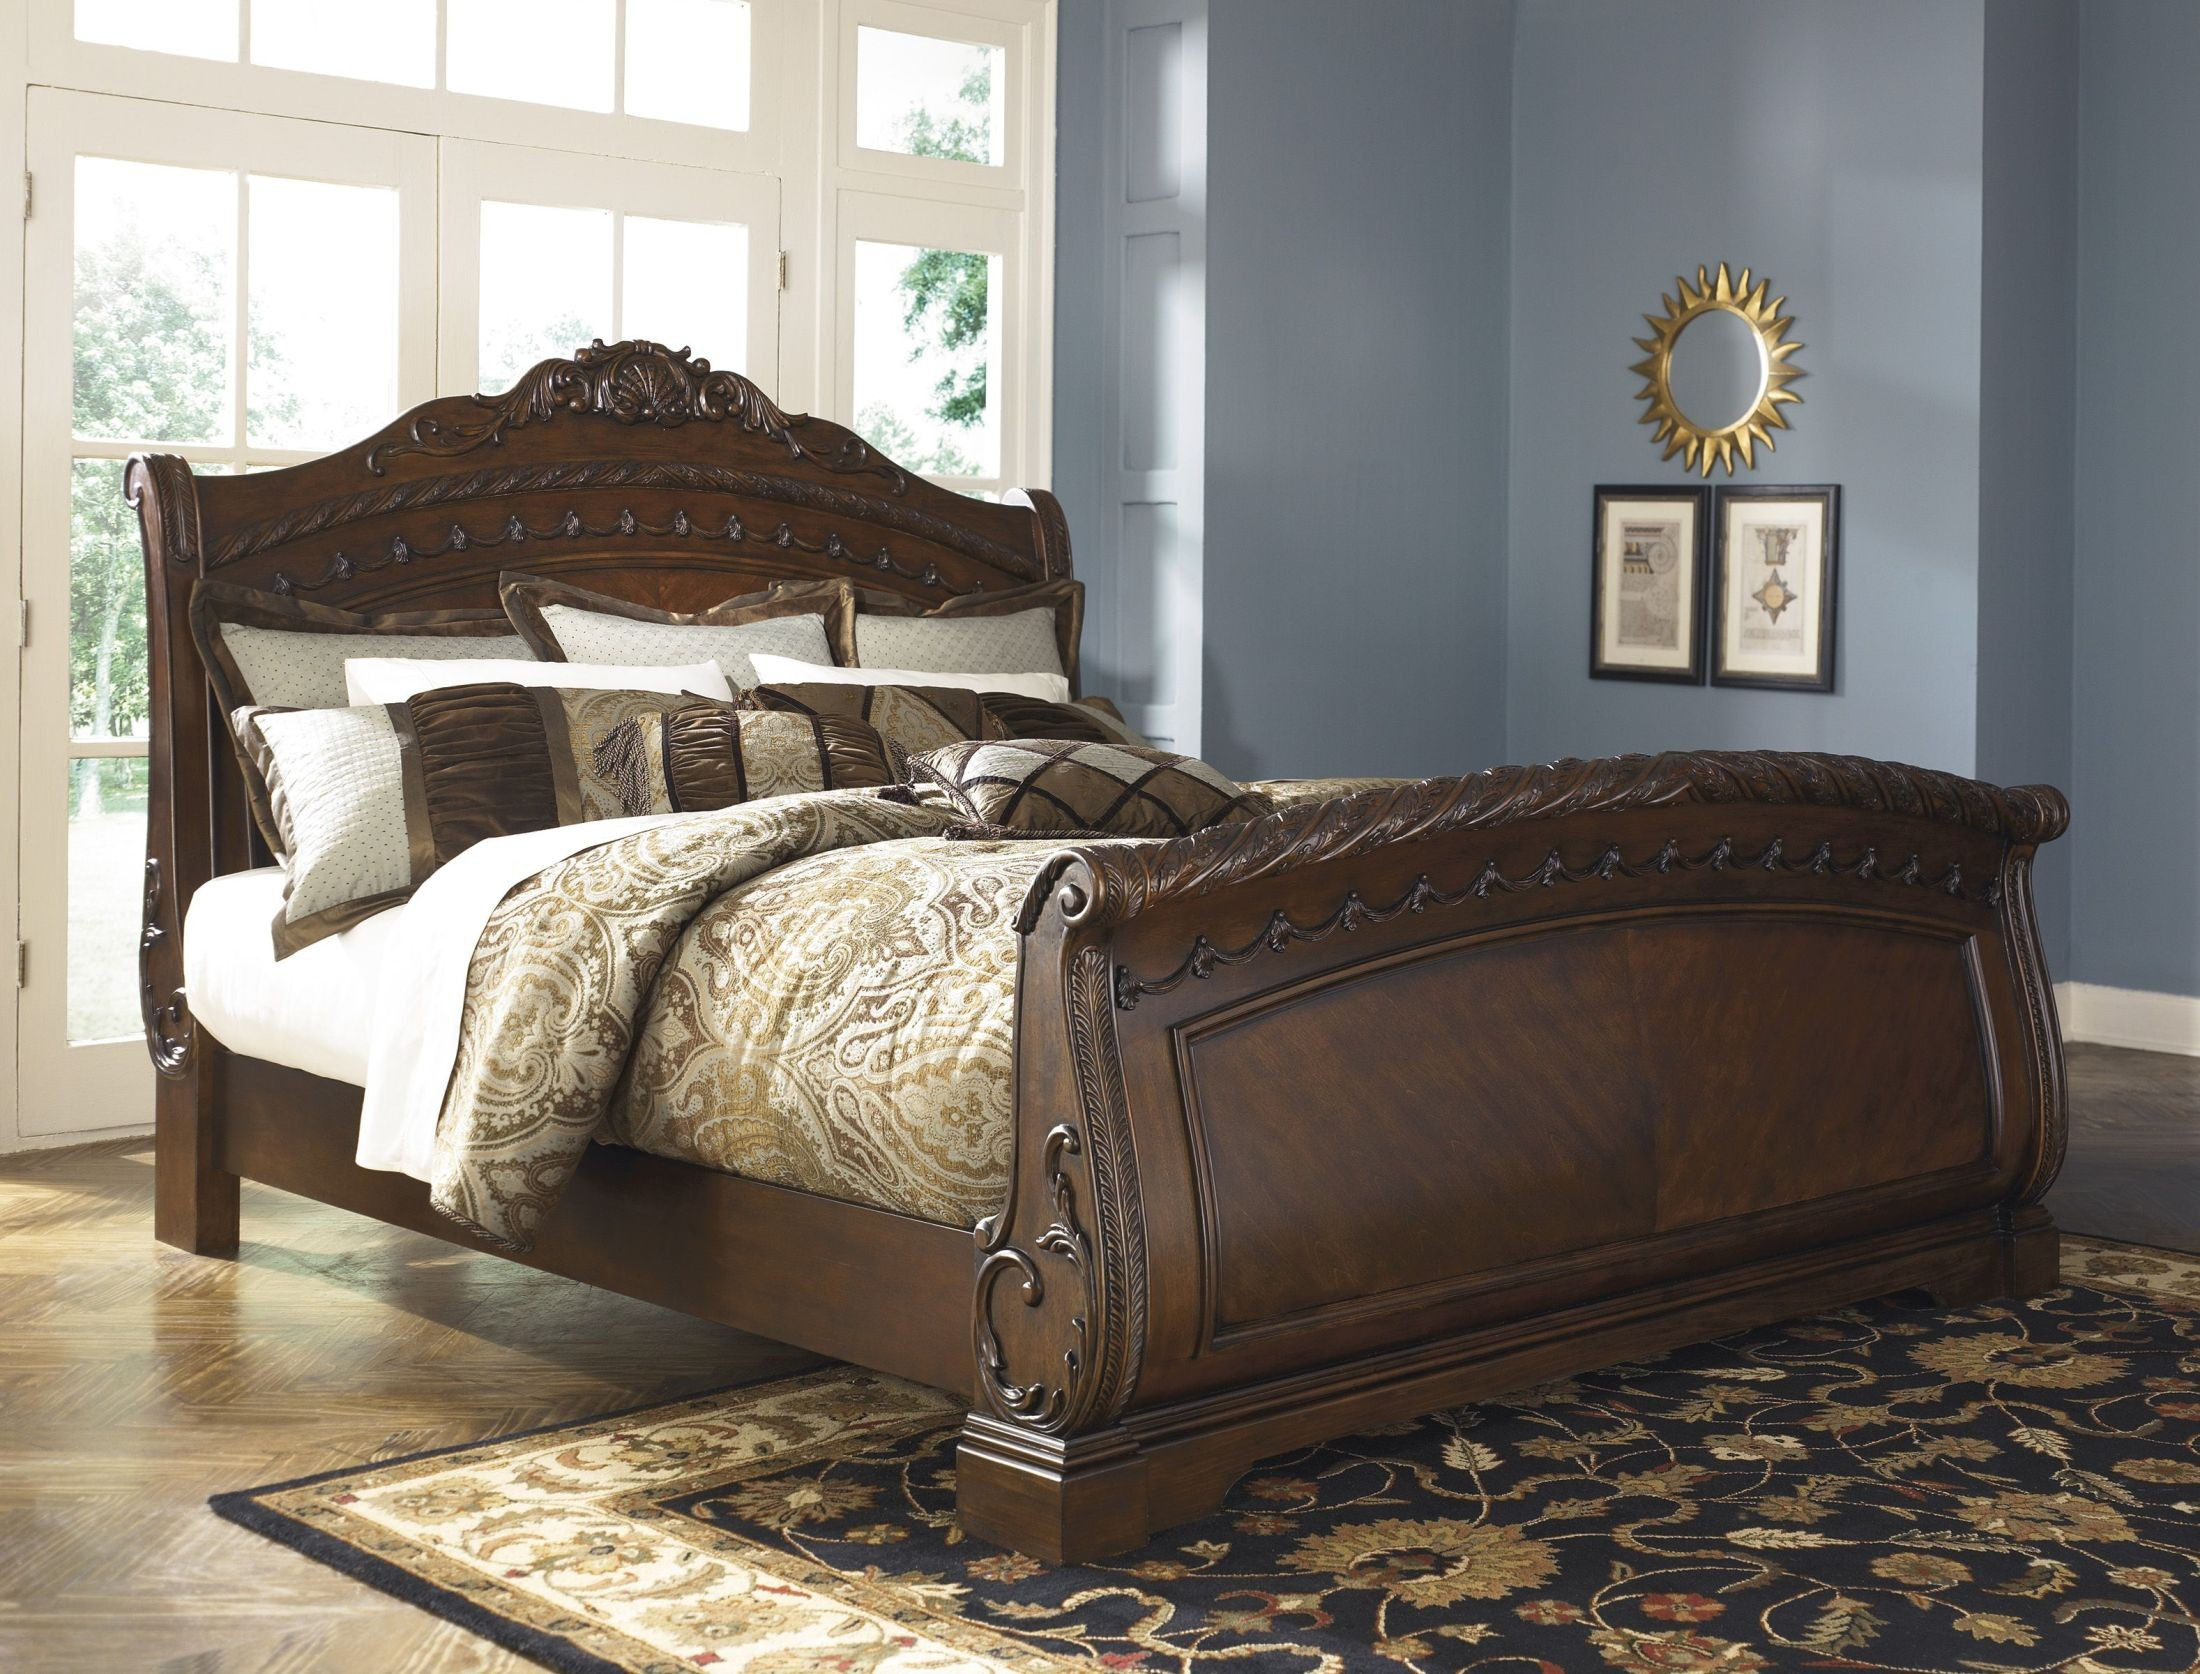 North Shore King Sleigh Bed From Ashley B553 78 76 79